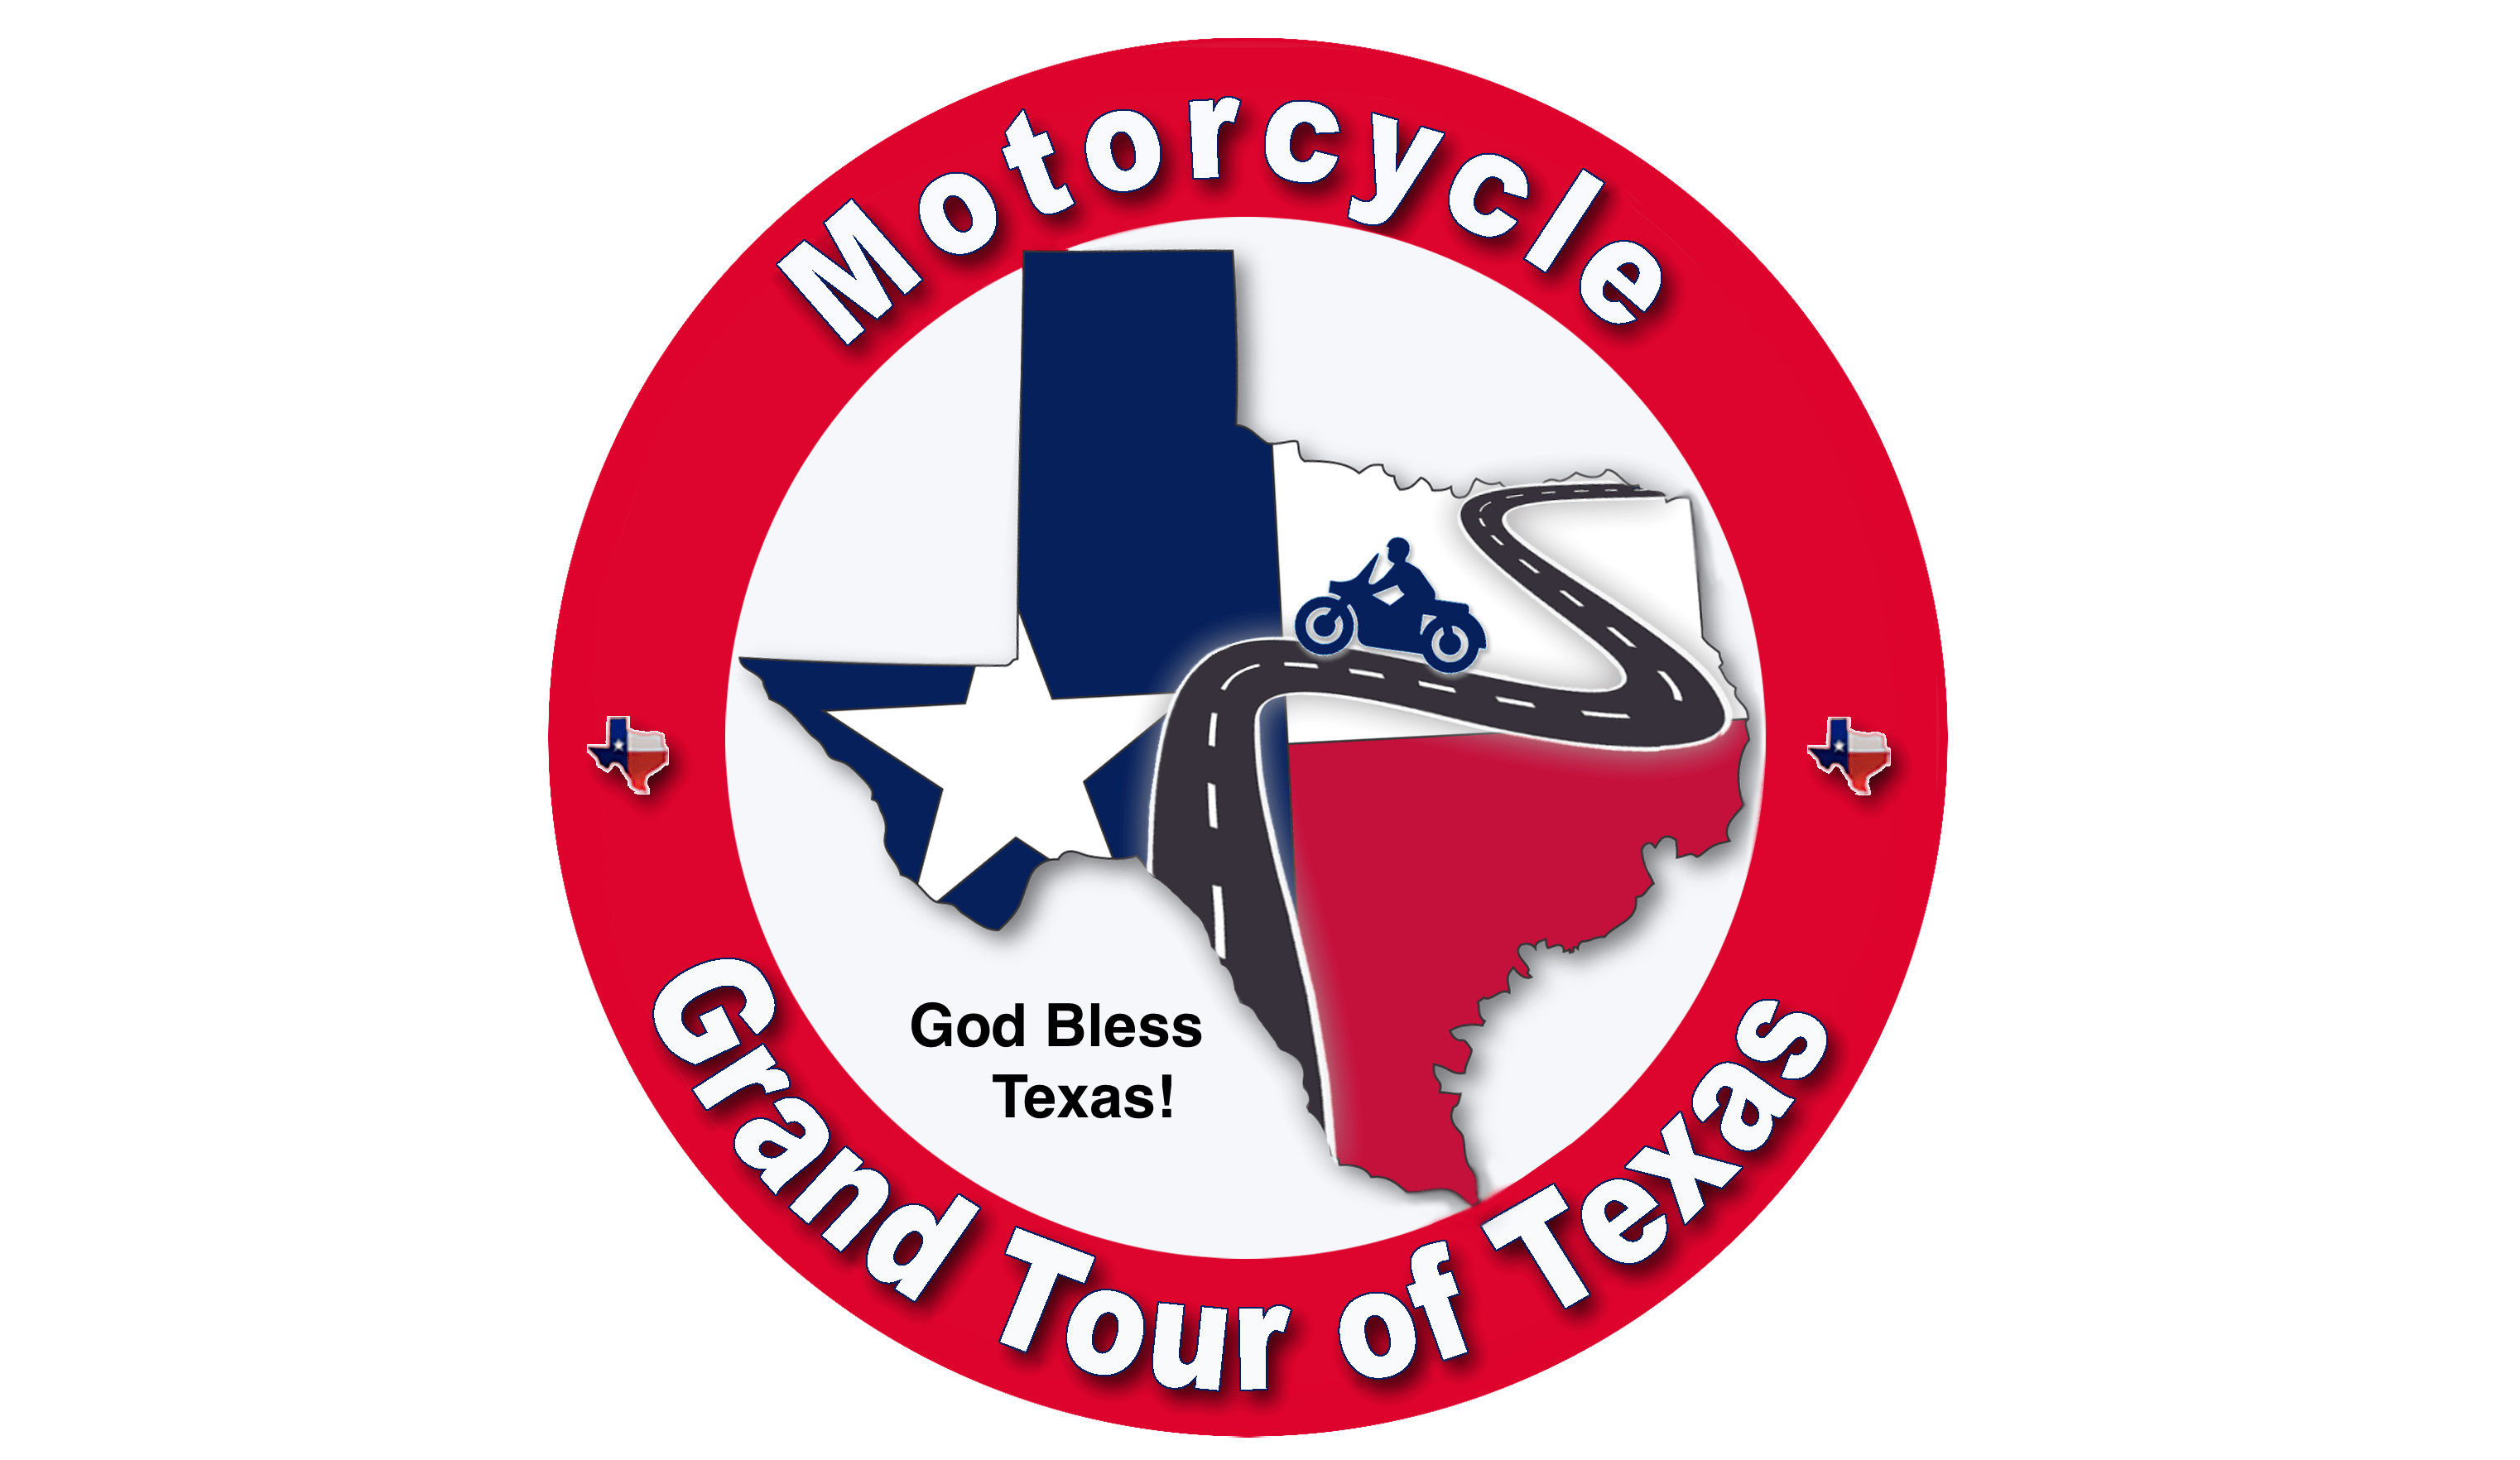 Motorcycle Grand Tour of Texas